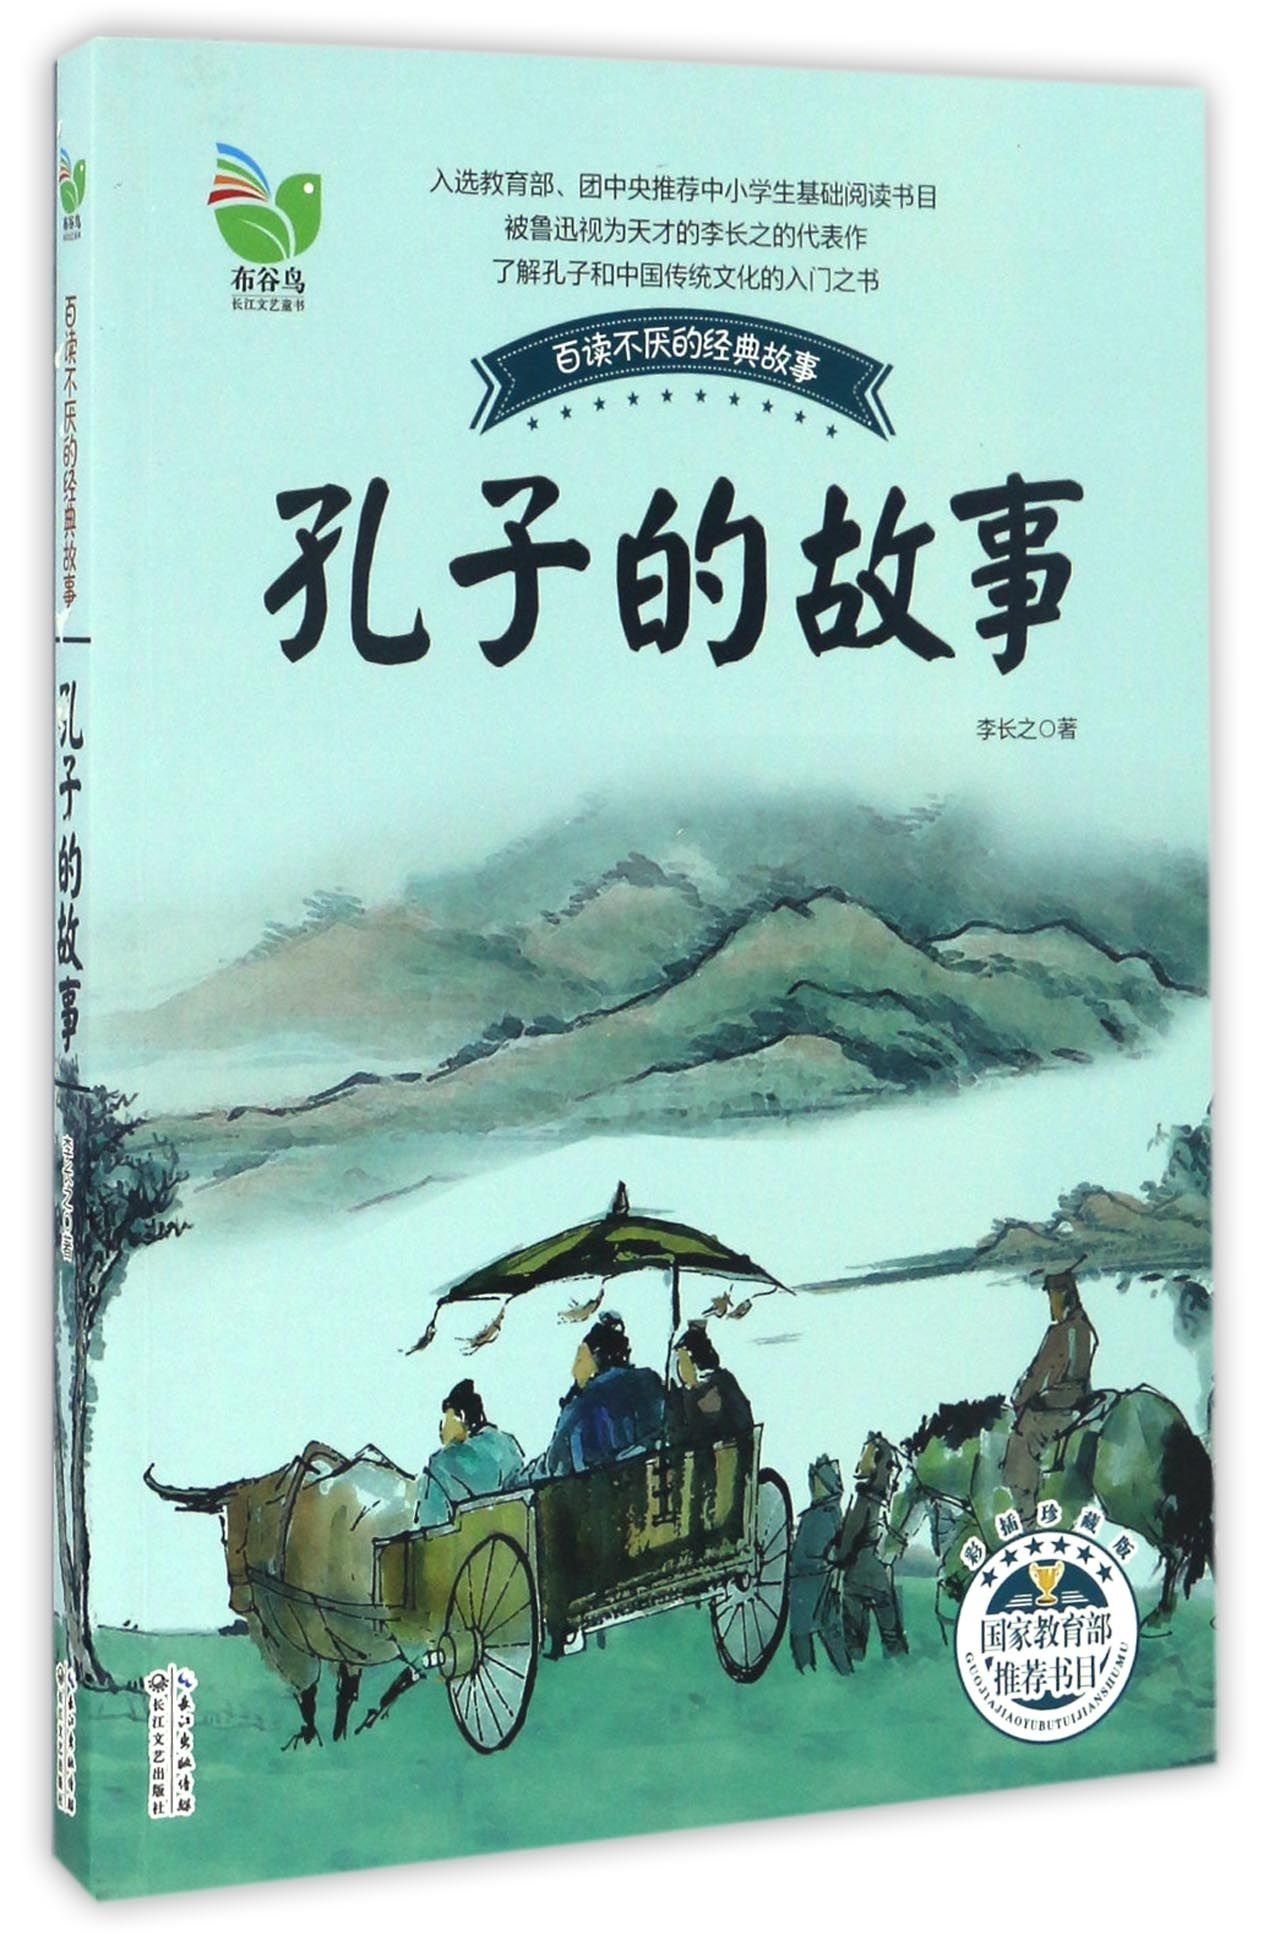 Download The Story of Confucius (Colored Collector's Edition) (Chinese Edition) ebook